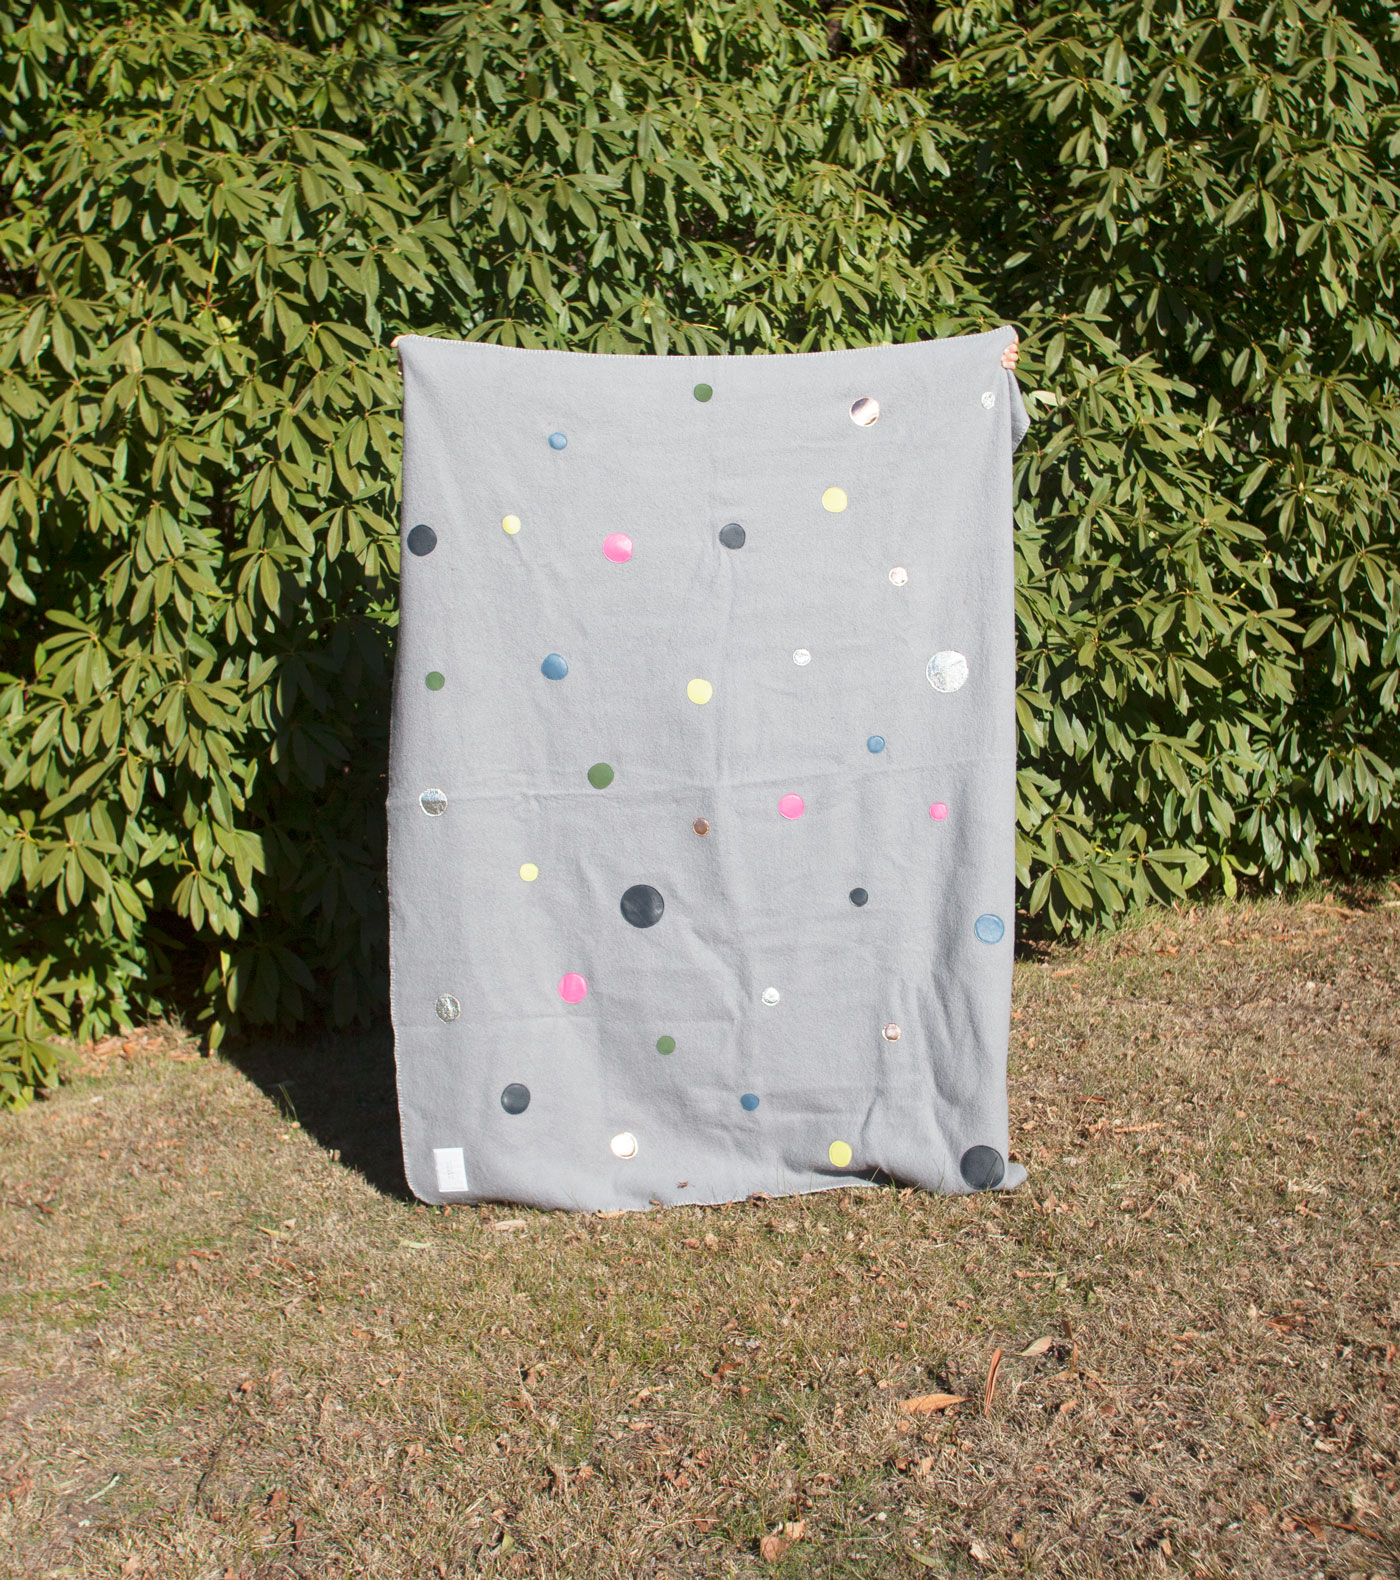 Bubbles Blanket - Bubbles is a Grey crafted Merino Wool blanket with leather detailing. This blanket is the perfect size for snuggling up on the couch, or an extra layer for your bed. It has a label on the back to write your name, to give it a personalised touch (and so you don't have to share if you don't want to).One of a kind, the shapes are made up of colourful leather pieces, all hand cut and sewn on by me.The blankets are sourced from Tasmania, Australia, and are super soft, hard wearing, and warm.Size: 175cm x 150cm